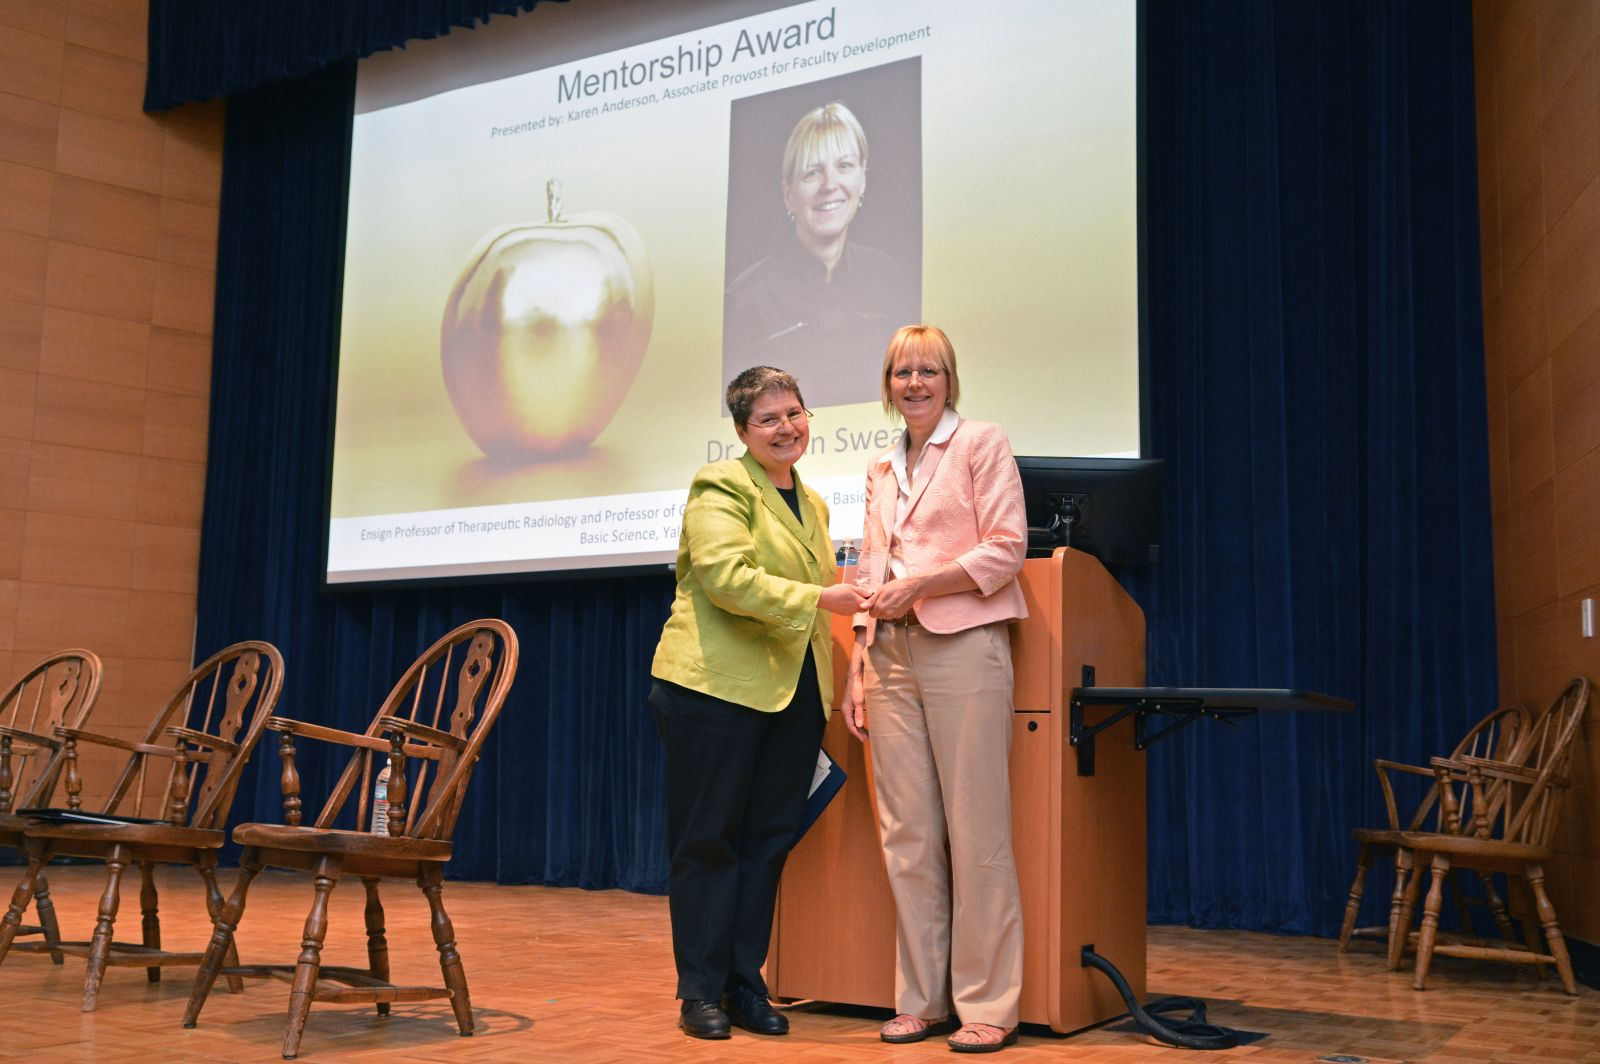 Karen Anderson (left), associate provost for academic resources and faculty development, presents the Postdoctoral Mentoring Prize to Joann Sweasy at the ceremony on Sept. 19. (Photo by Michael Marsland)